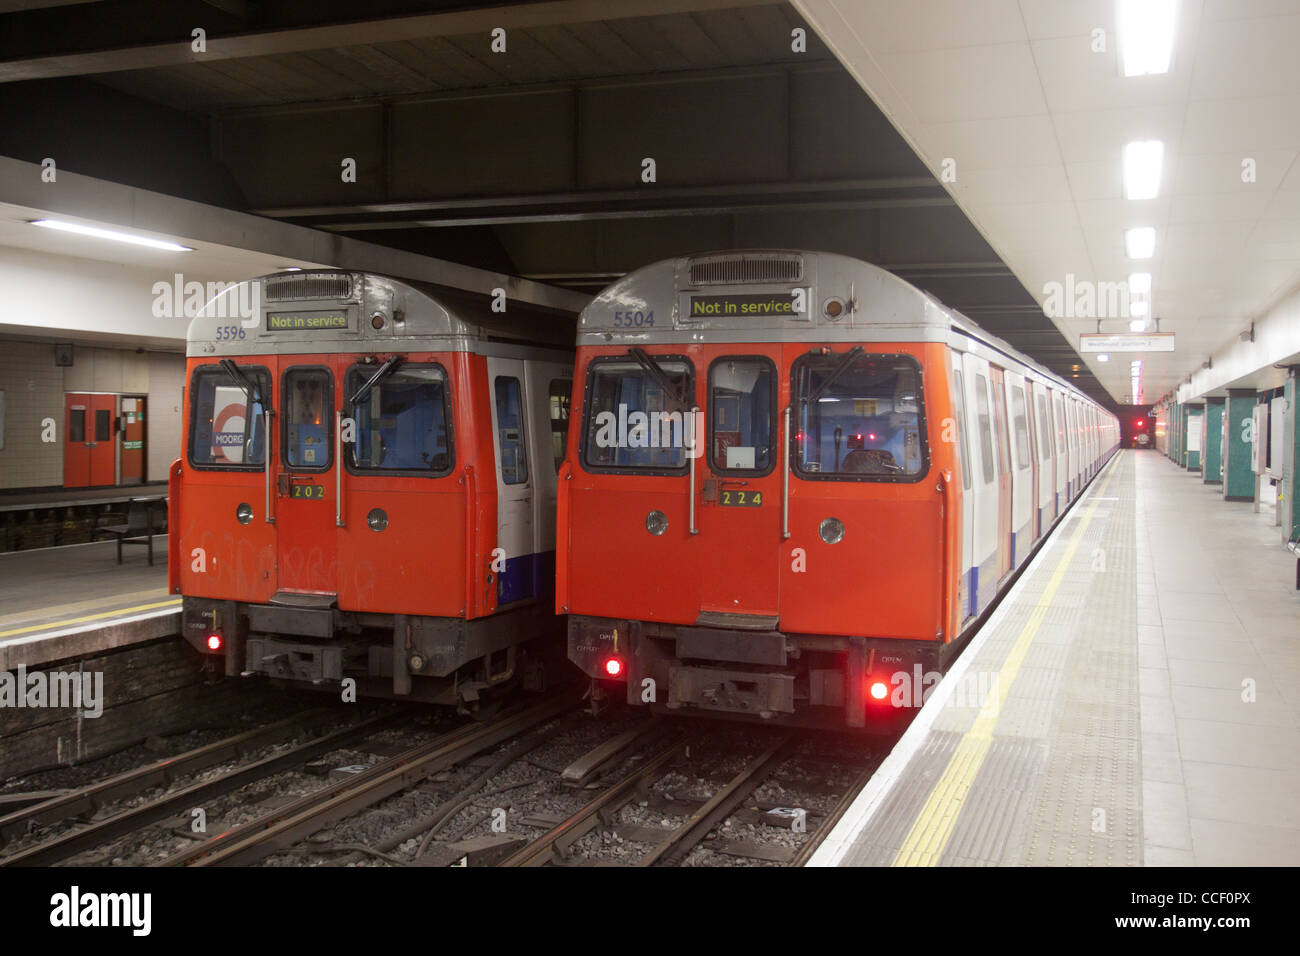 London Underground trains stopped in empty station - Stock Image